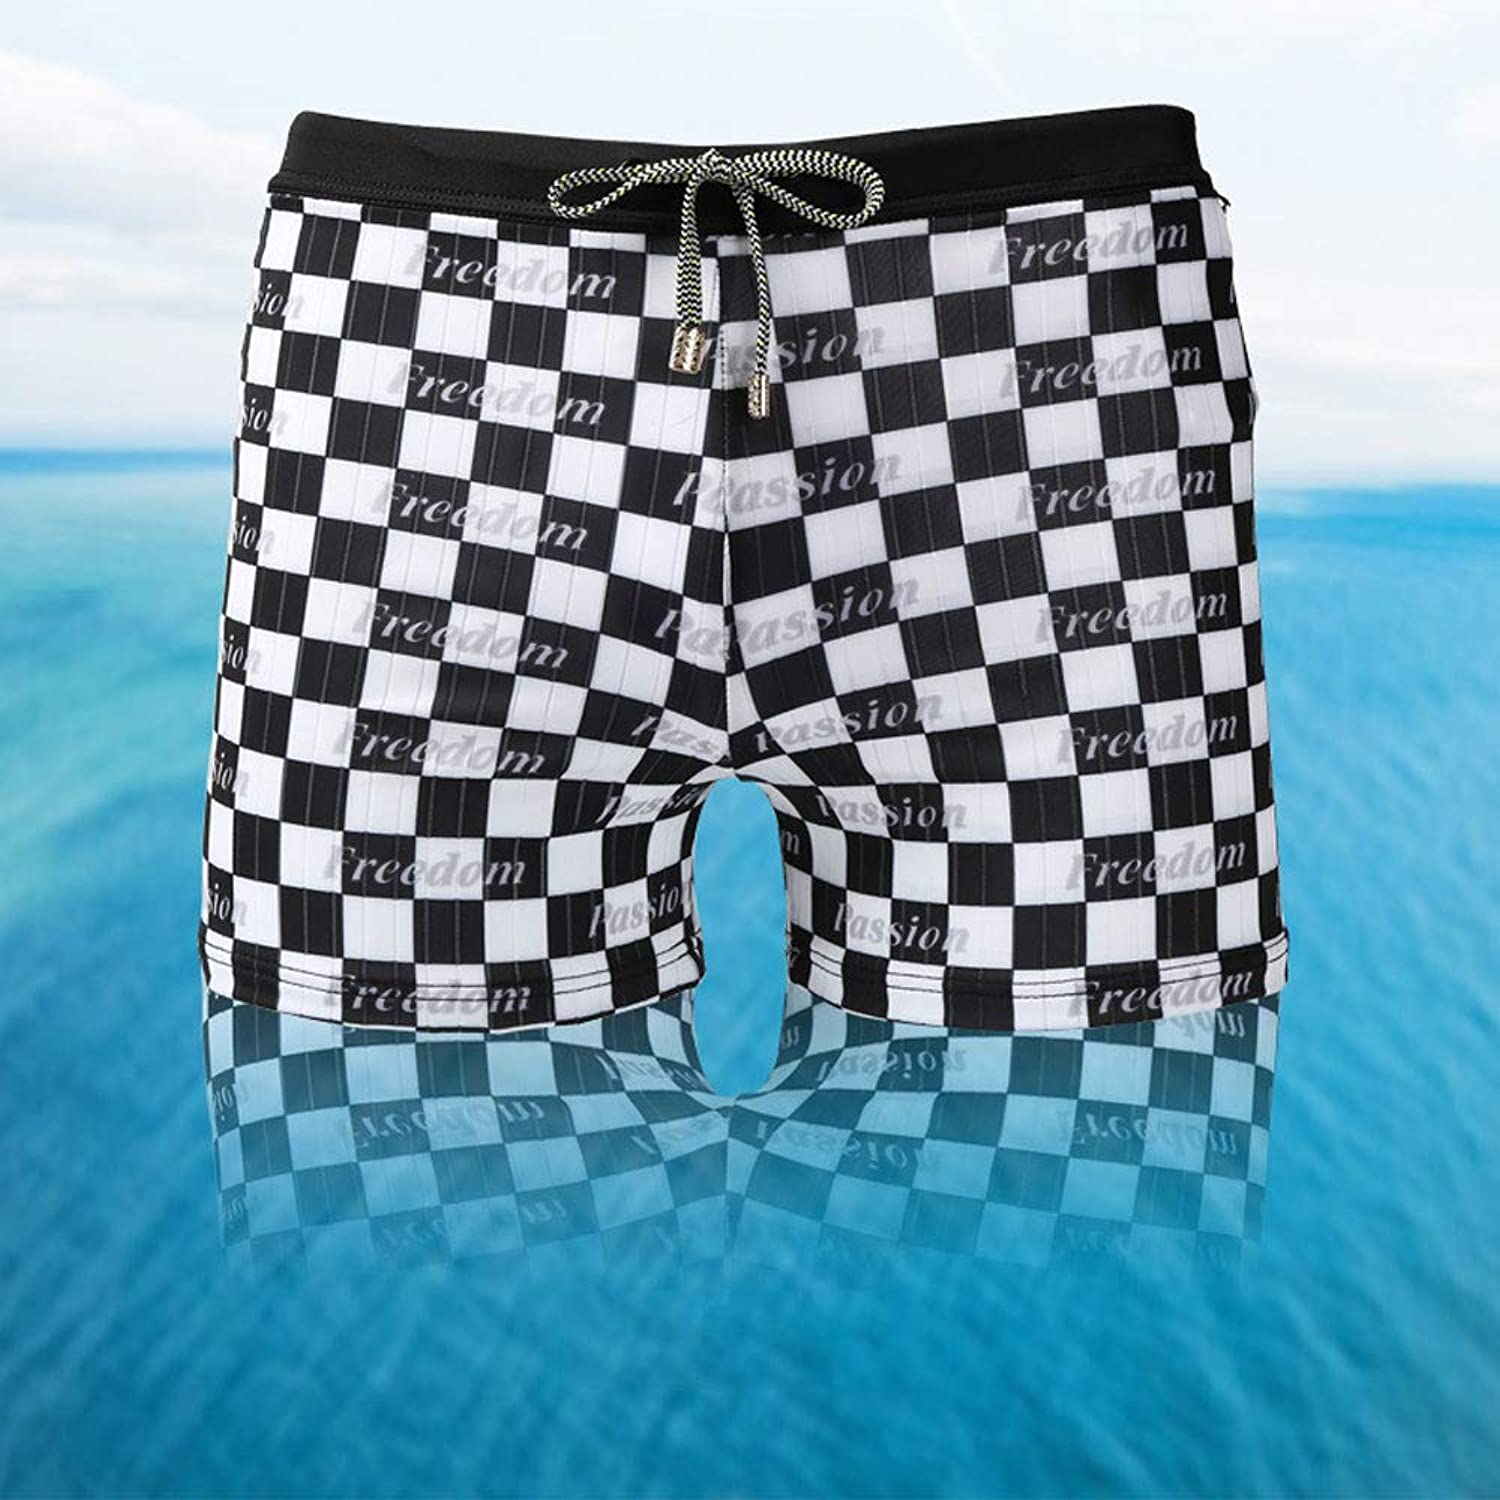 Cotress Summer Seaside EbarrassedProof Holiday New Men's Swimming Trunks Black and White Boxer Swimming Trunks Fashion Men's Boxer Hot Springs Large Size Swimming Trunks